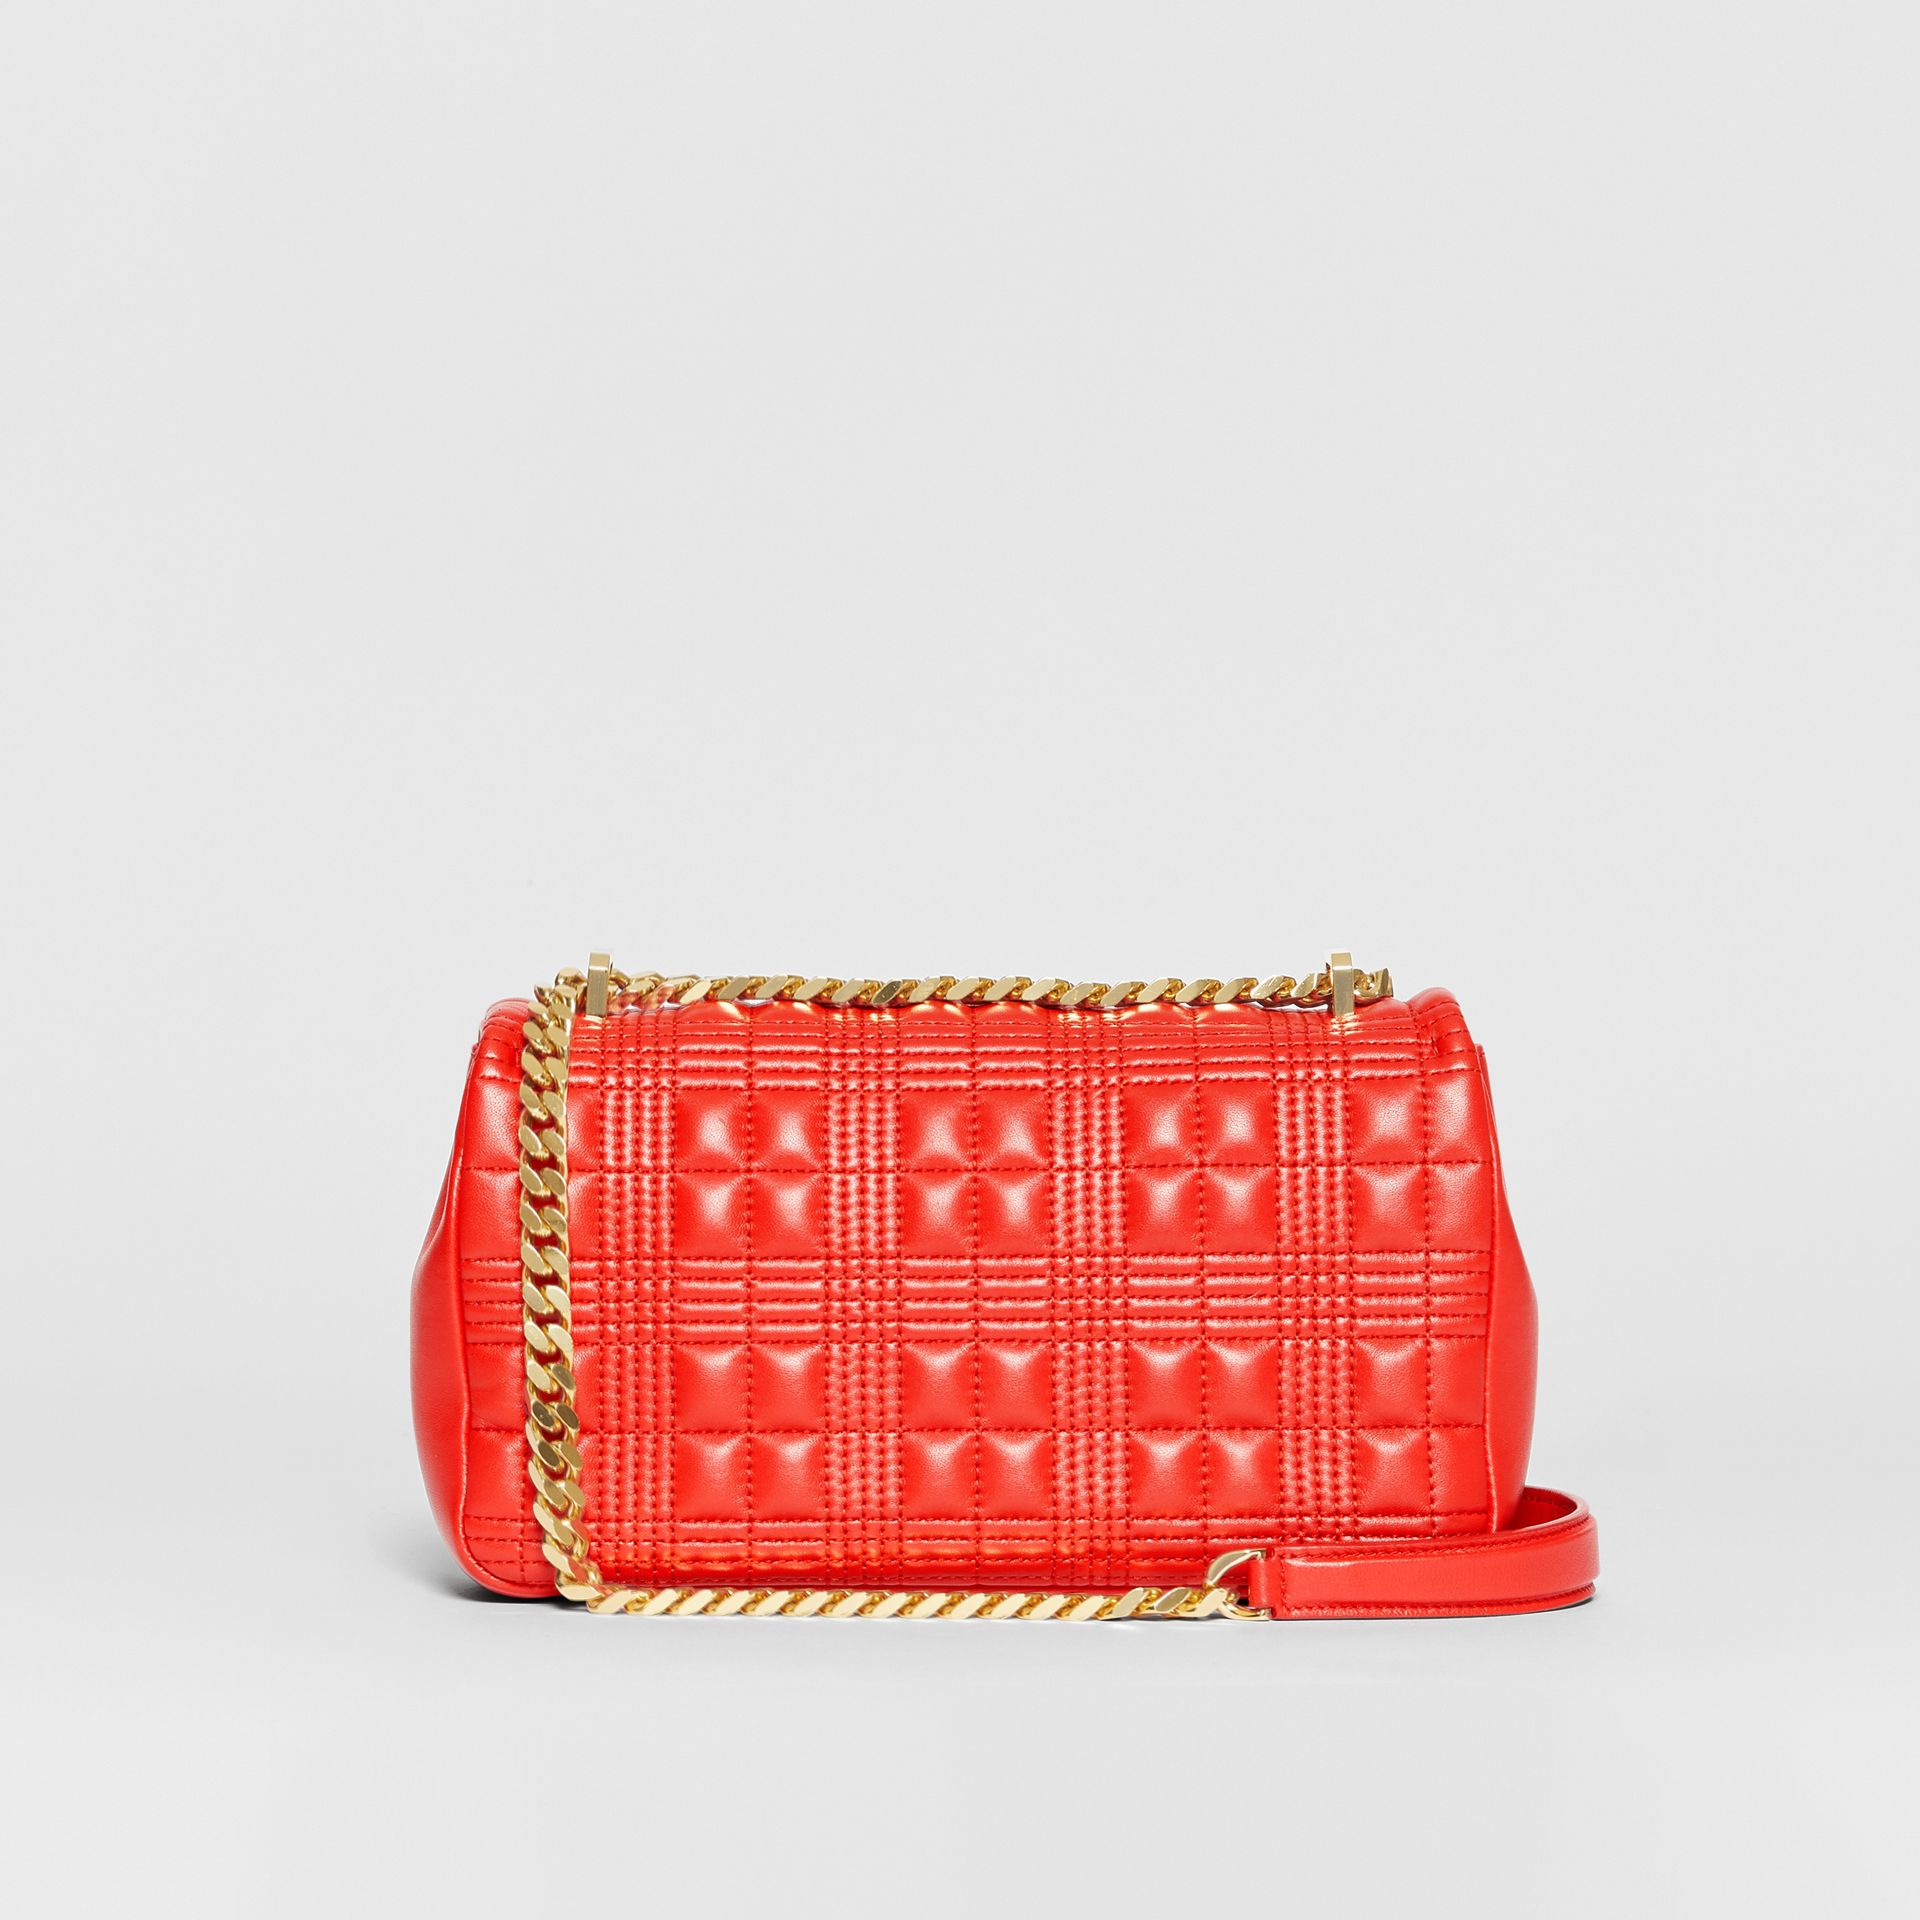 Small Quilted Lambskin Lola Bag in Bright Red - Women | Burberry United States - gallery image 8